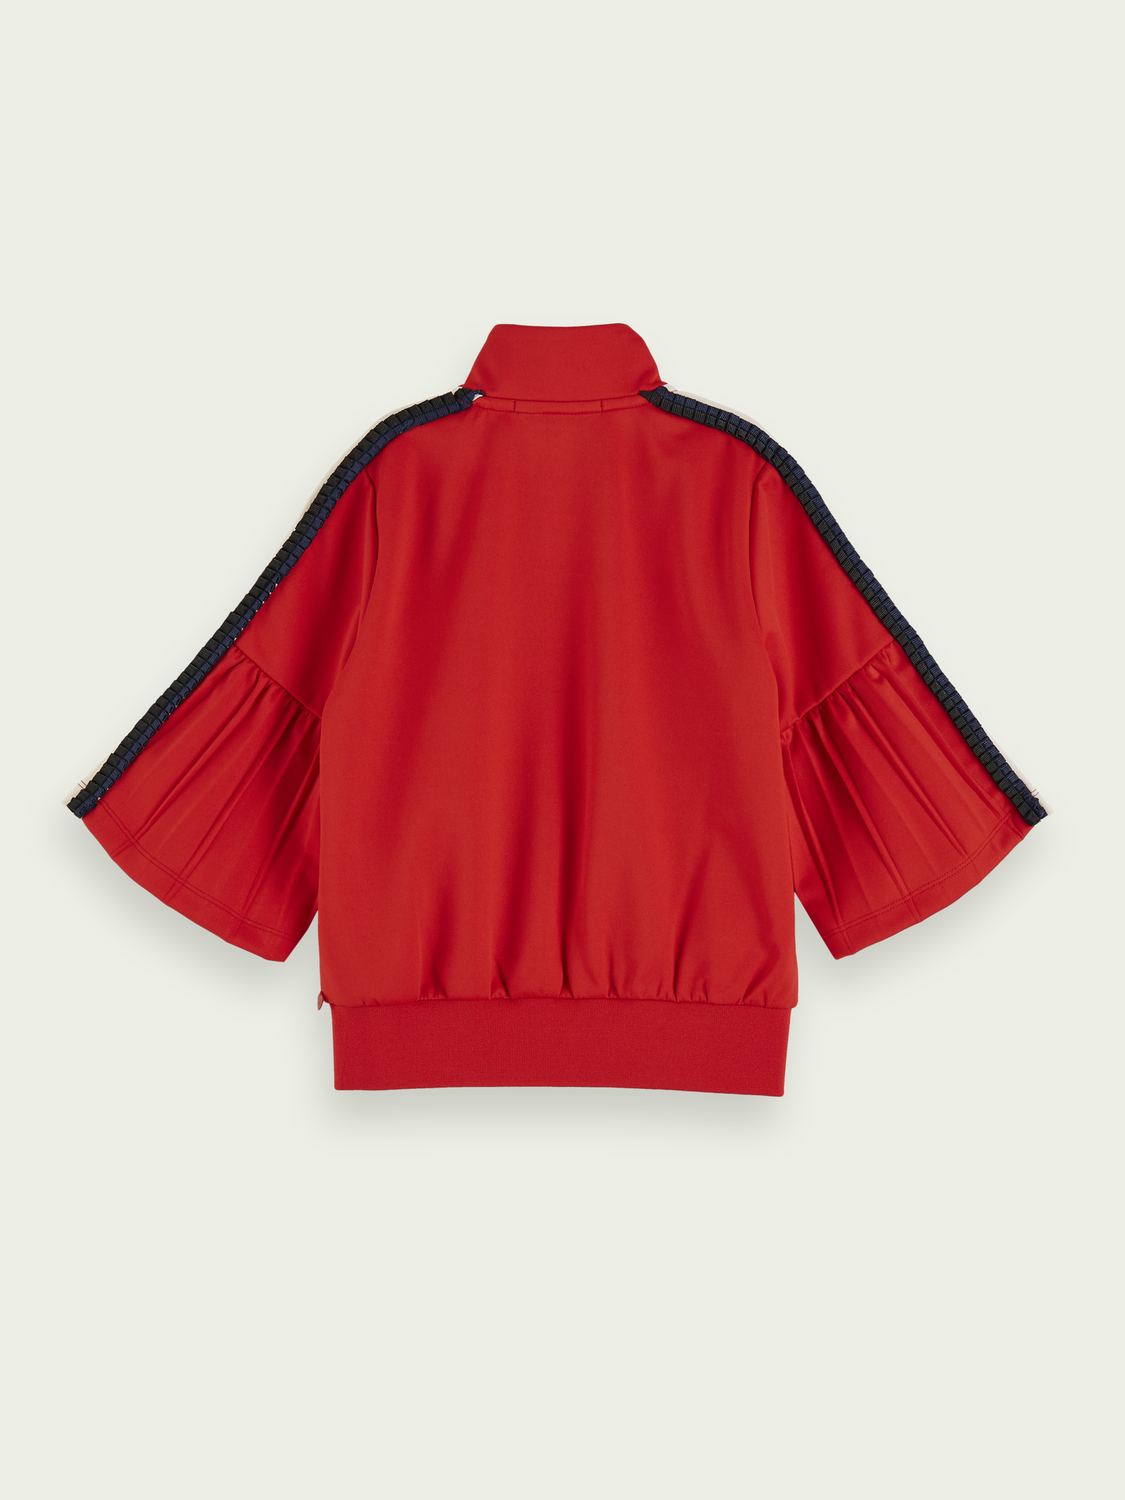 Kids ¾ sleeve pleated zip up sweatshirt